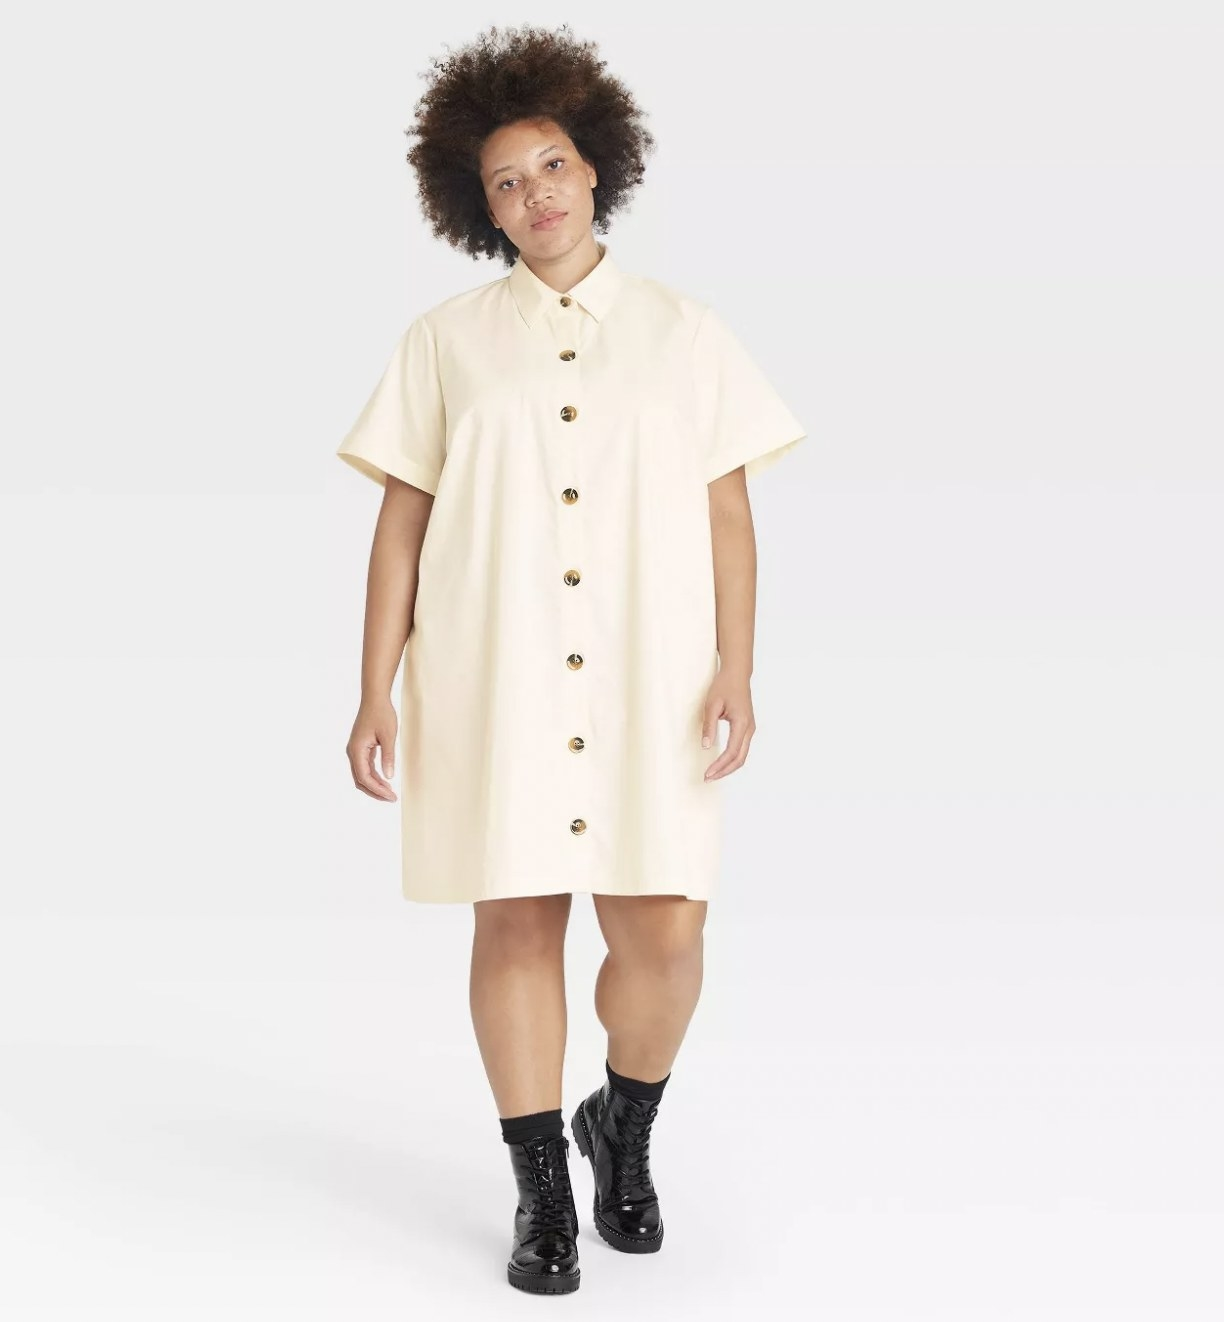 A model wearing a cream shirtdress with cuffed cap sleeves